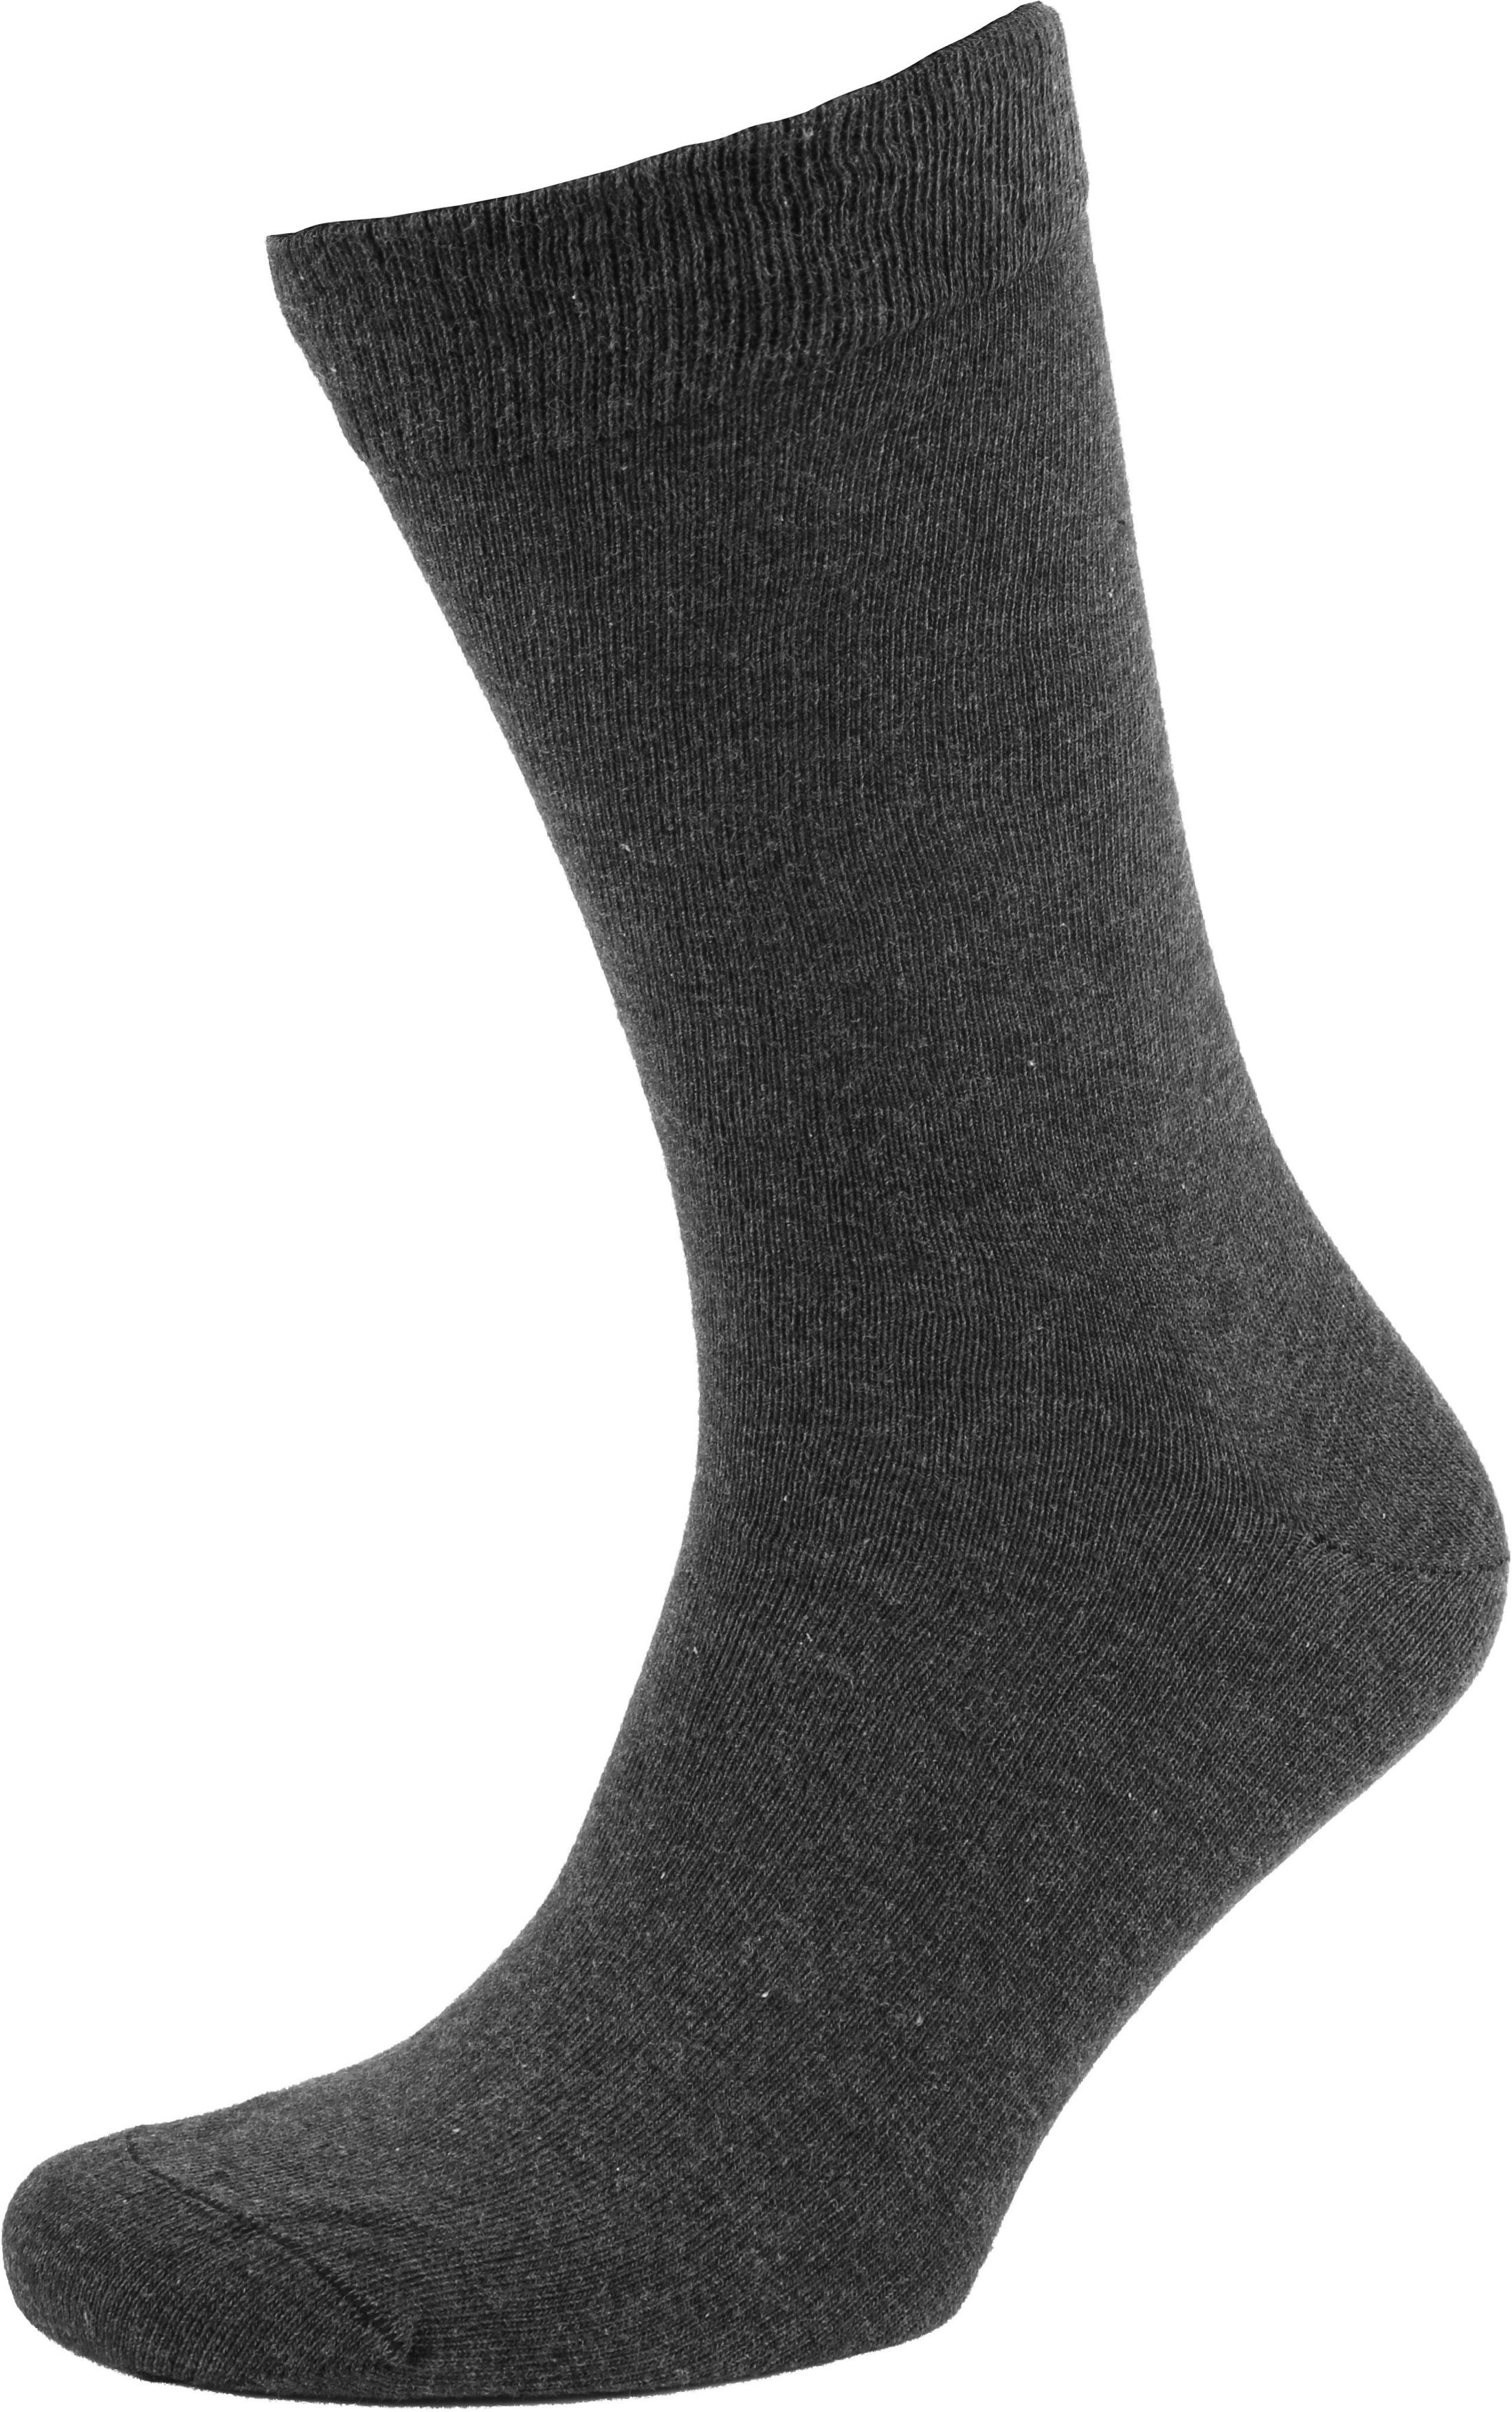 Suitable Bio Cotton Socks Dark Grey 6-Pack foto 2